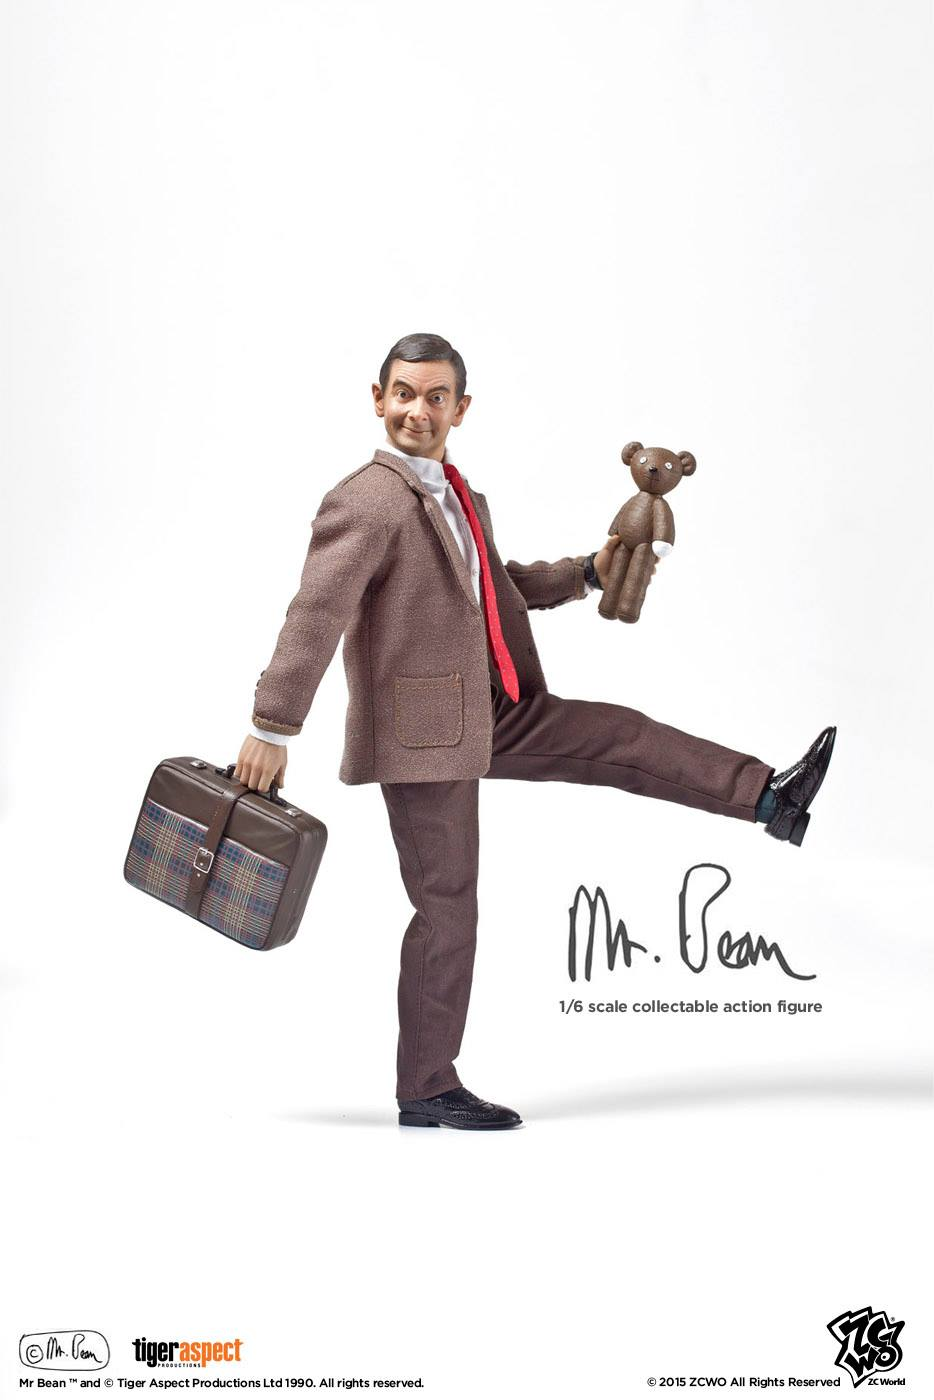 [ZCWO] Mr. Bean - 1/6 scale 150242p1e24hrnscngggmd